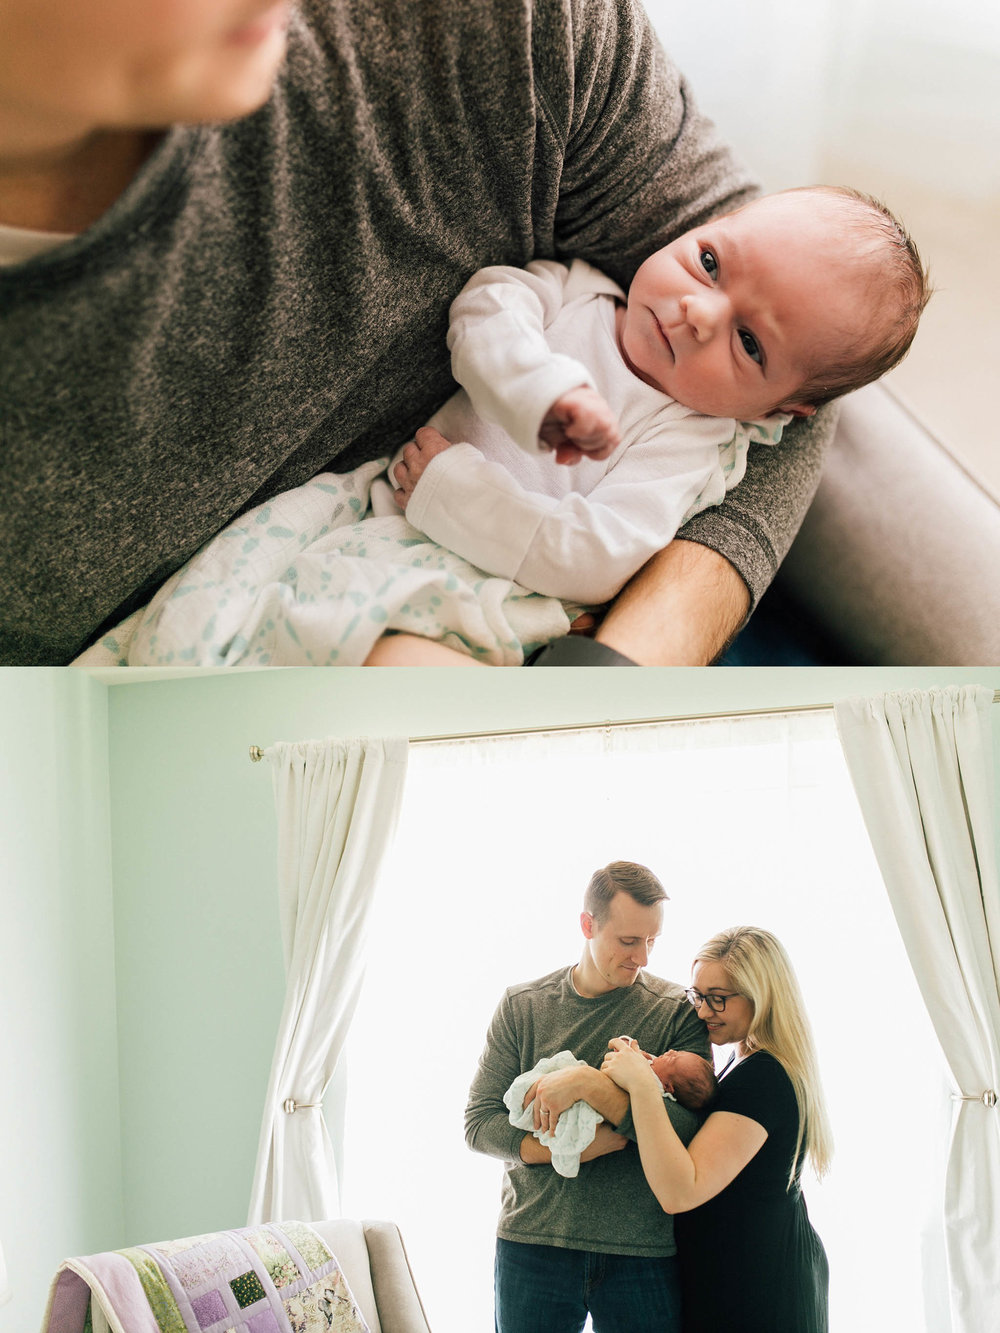 ashley vos seattle in home newborn session photography photographer pnw lifestyle-7.jpg